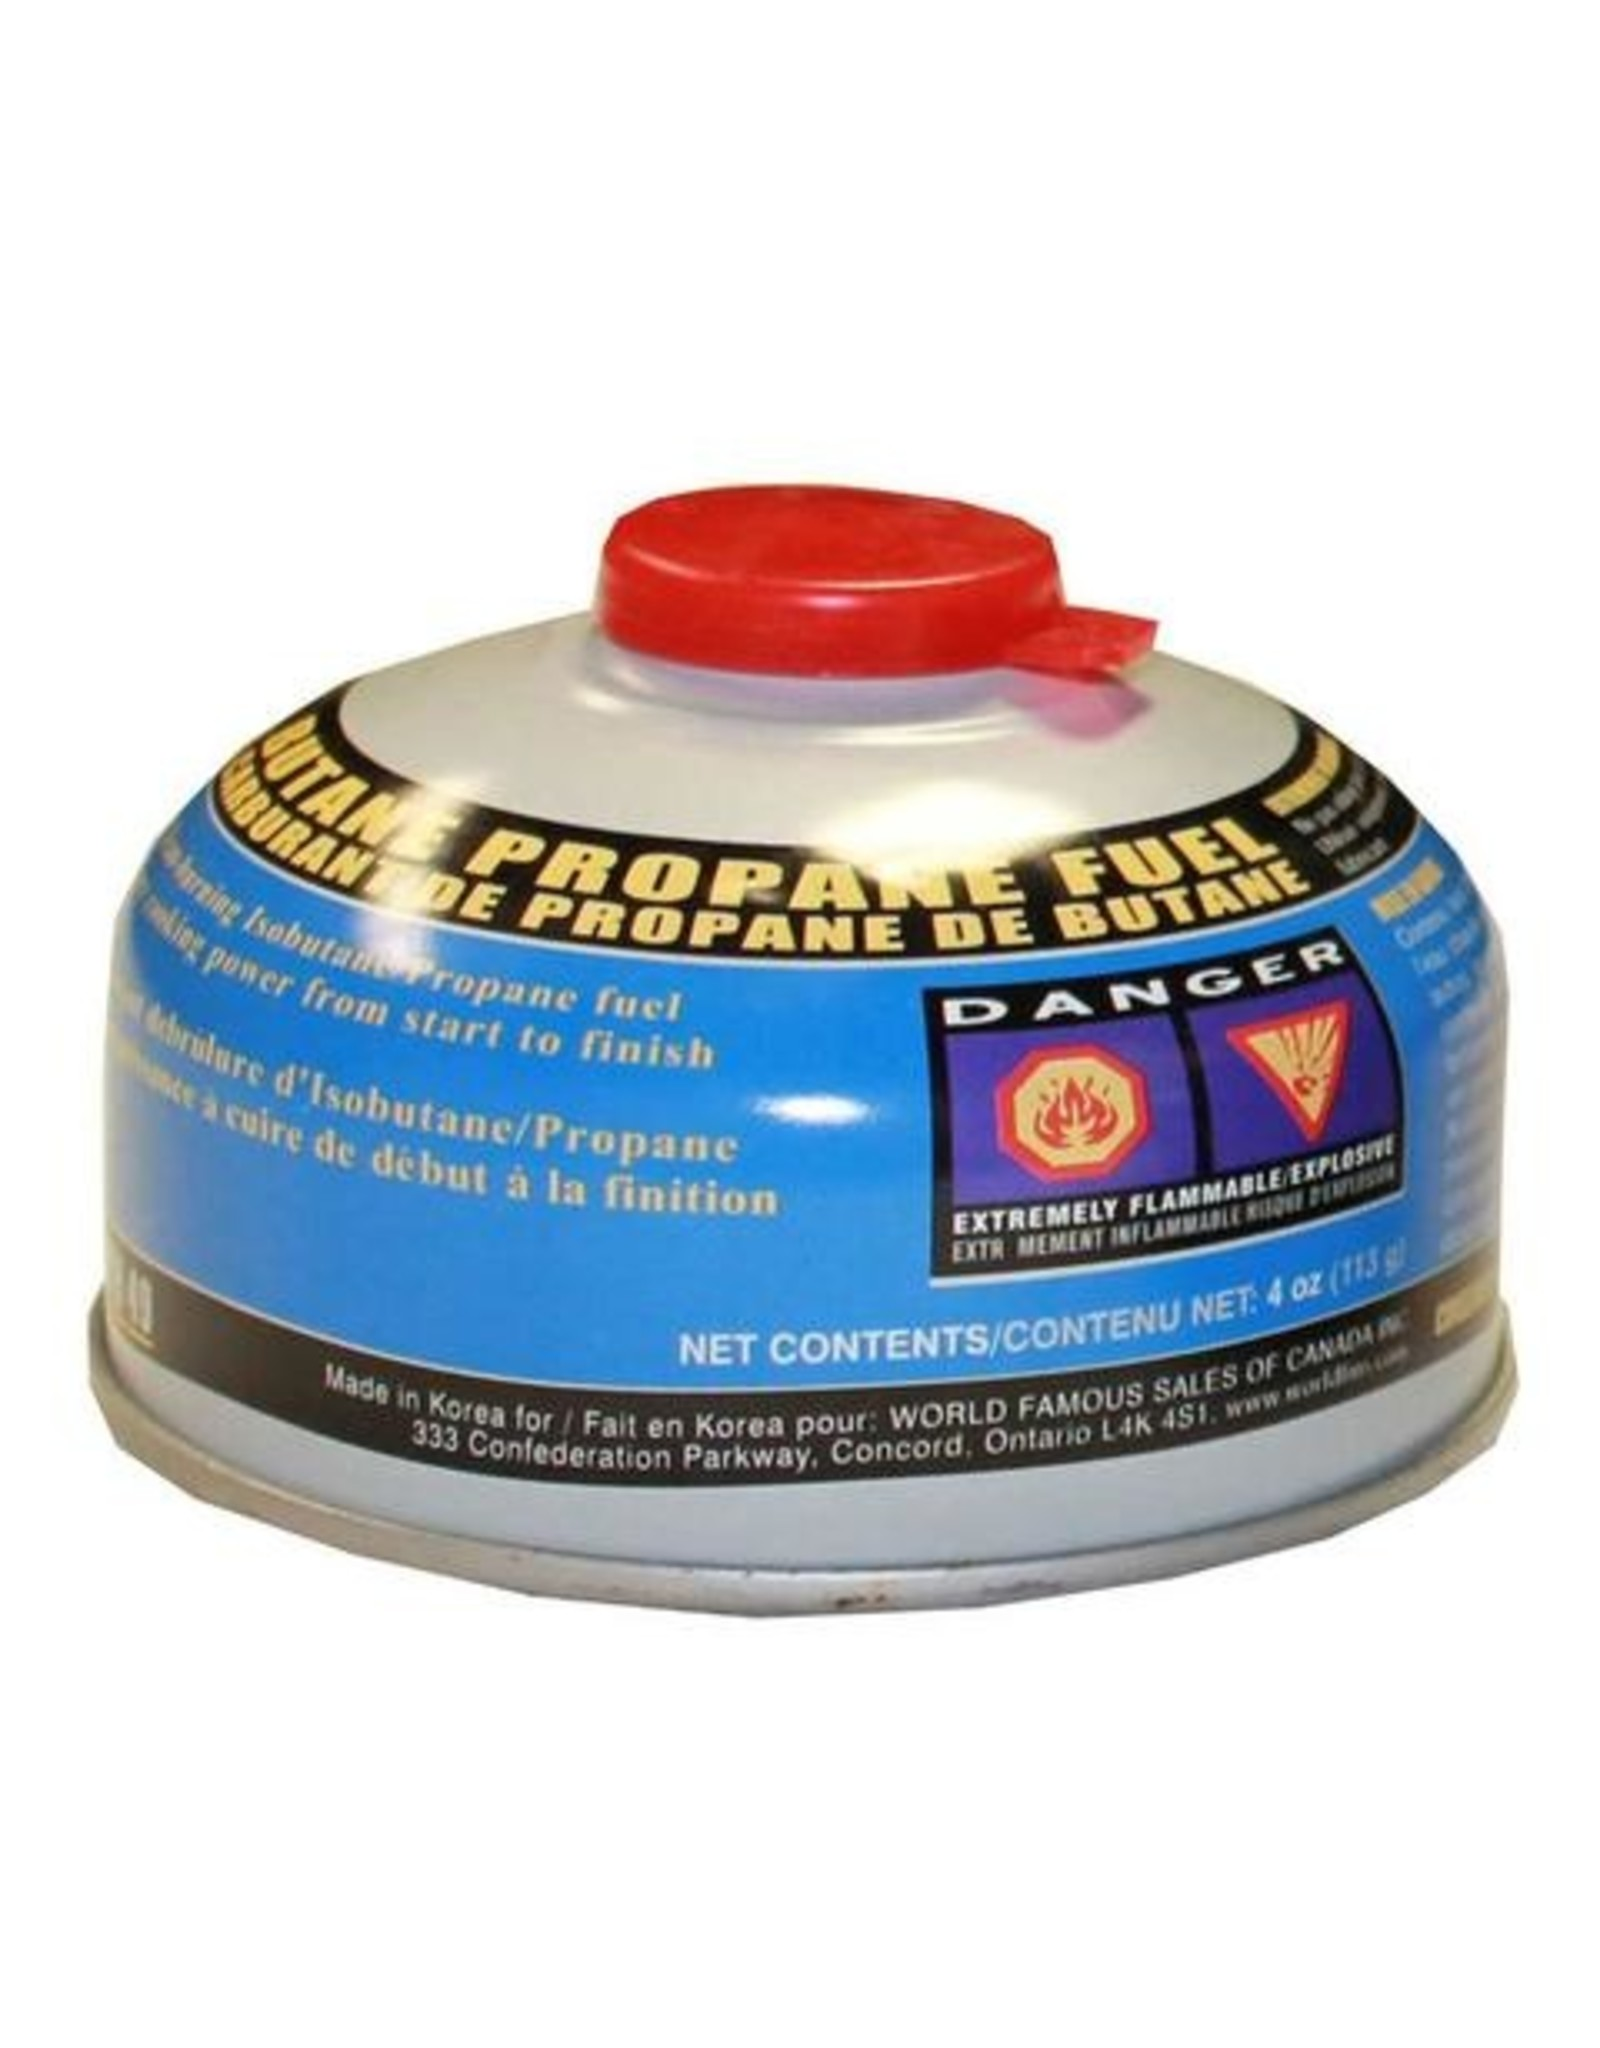 WORLD FAMOUS SALES BUTANE PROPANE FUEL-4 oz